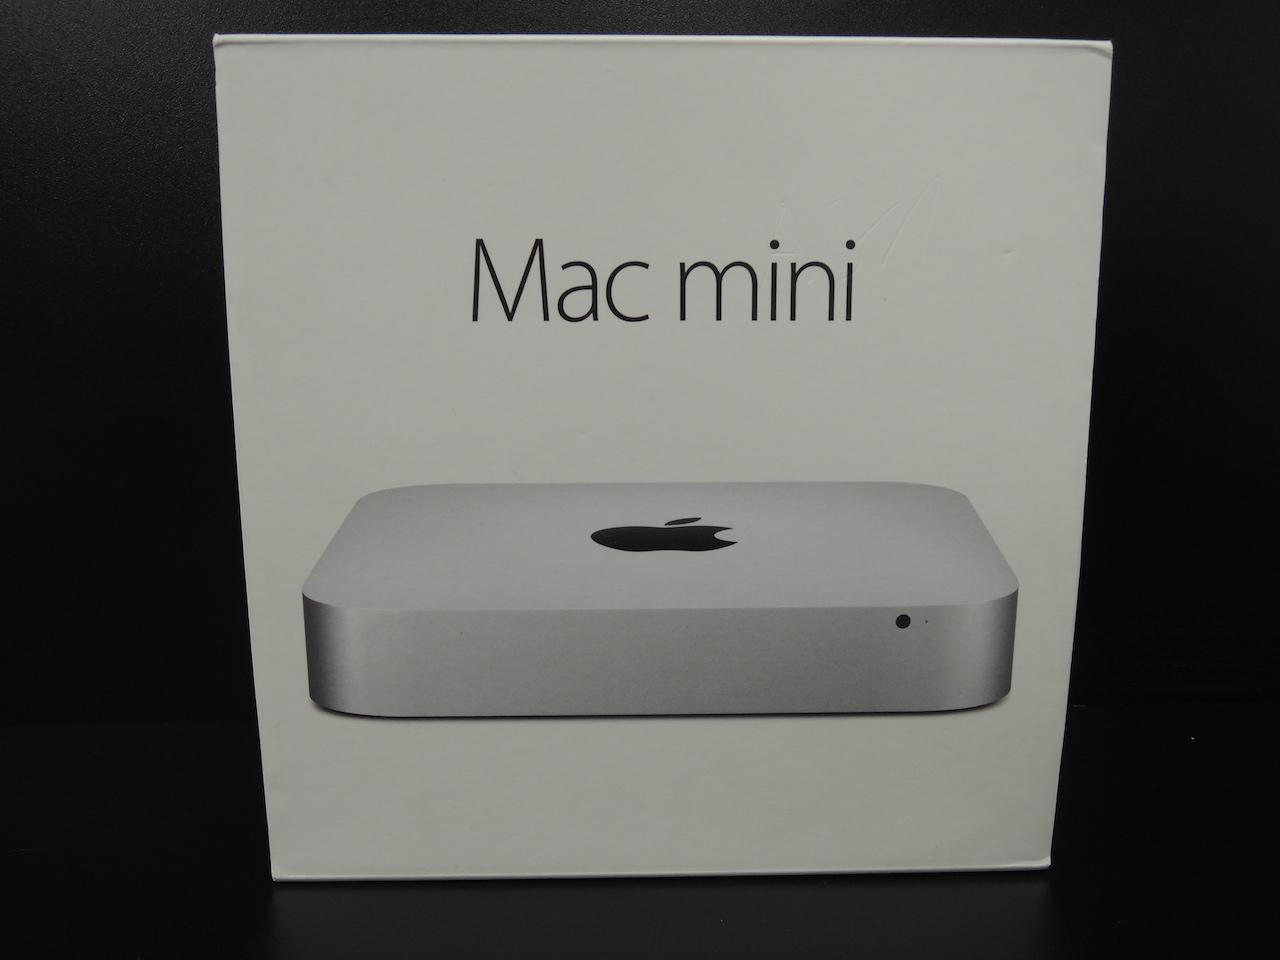 Apple Mac Mini 2014 i5 1.4 Ghz/4 GB RAM/500 GB HDD